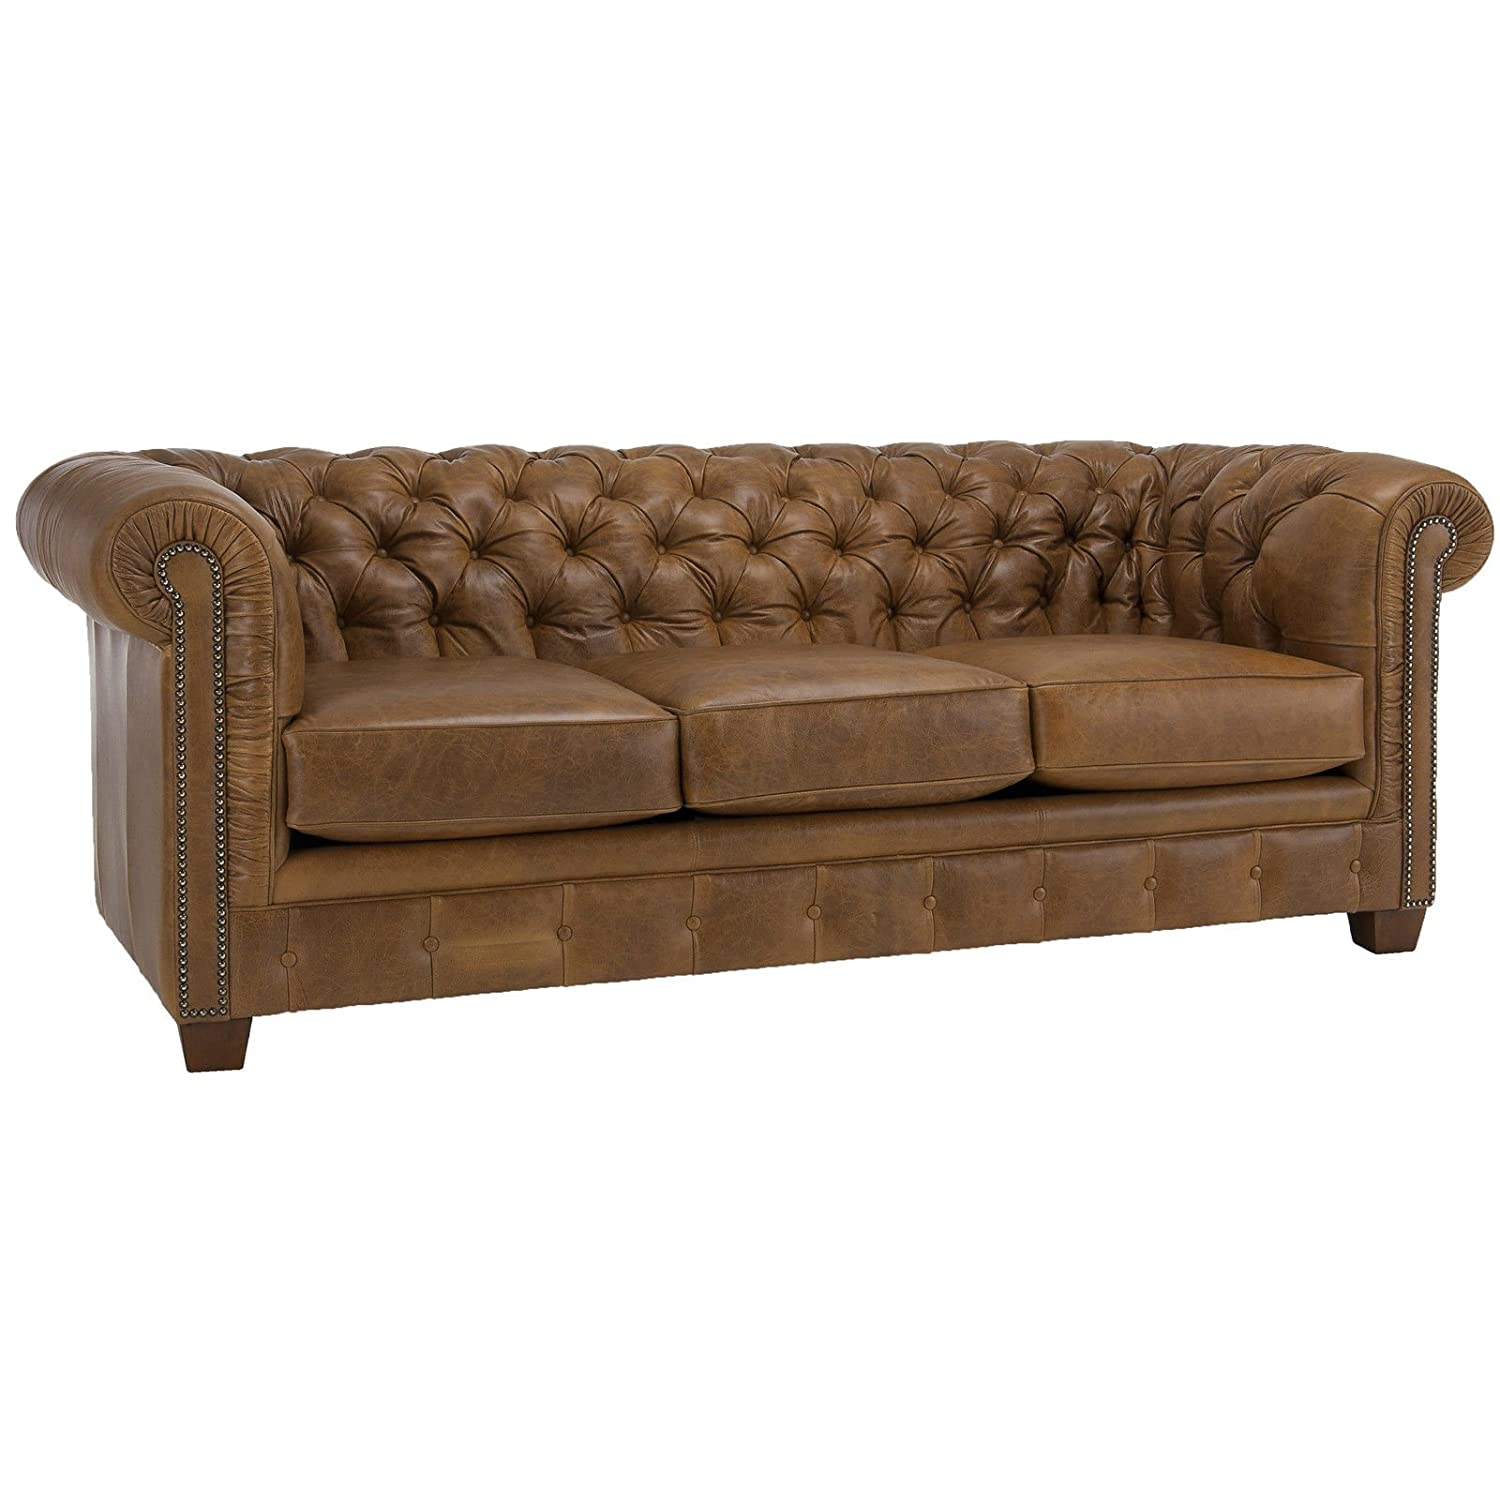 11e4df184c1 Amazon.com: Metro Shop Hancock Tufted Distressed Saddle Brown ...